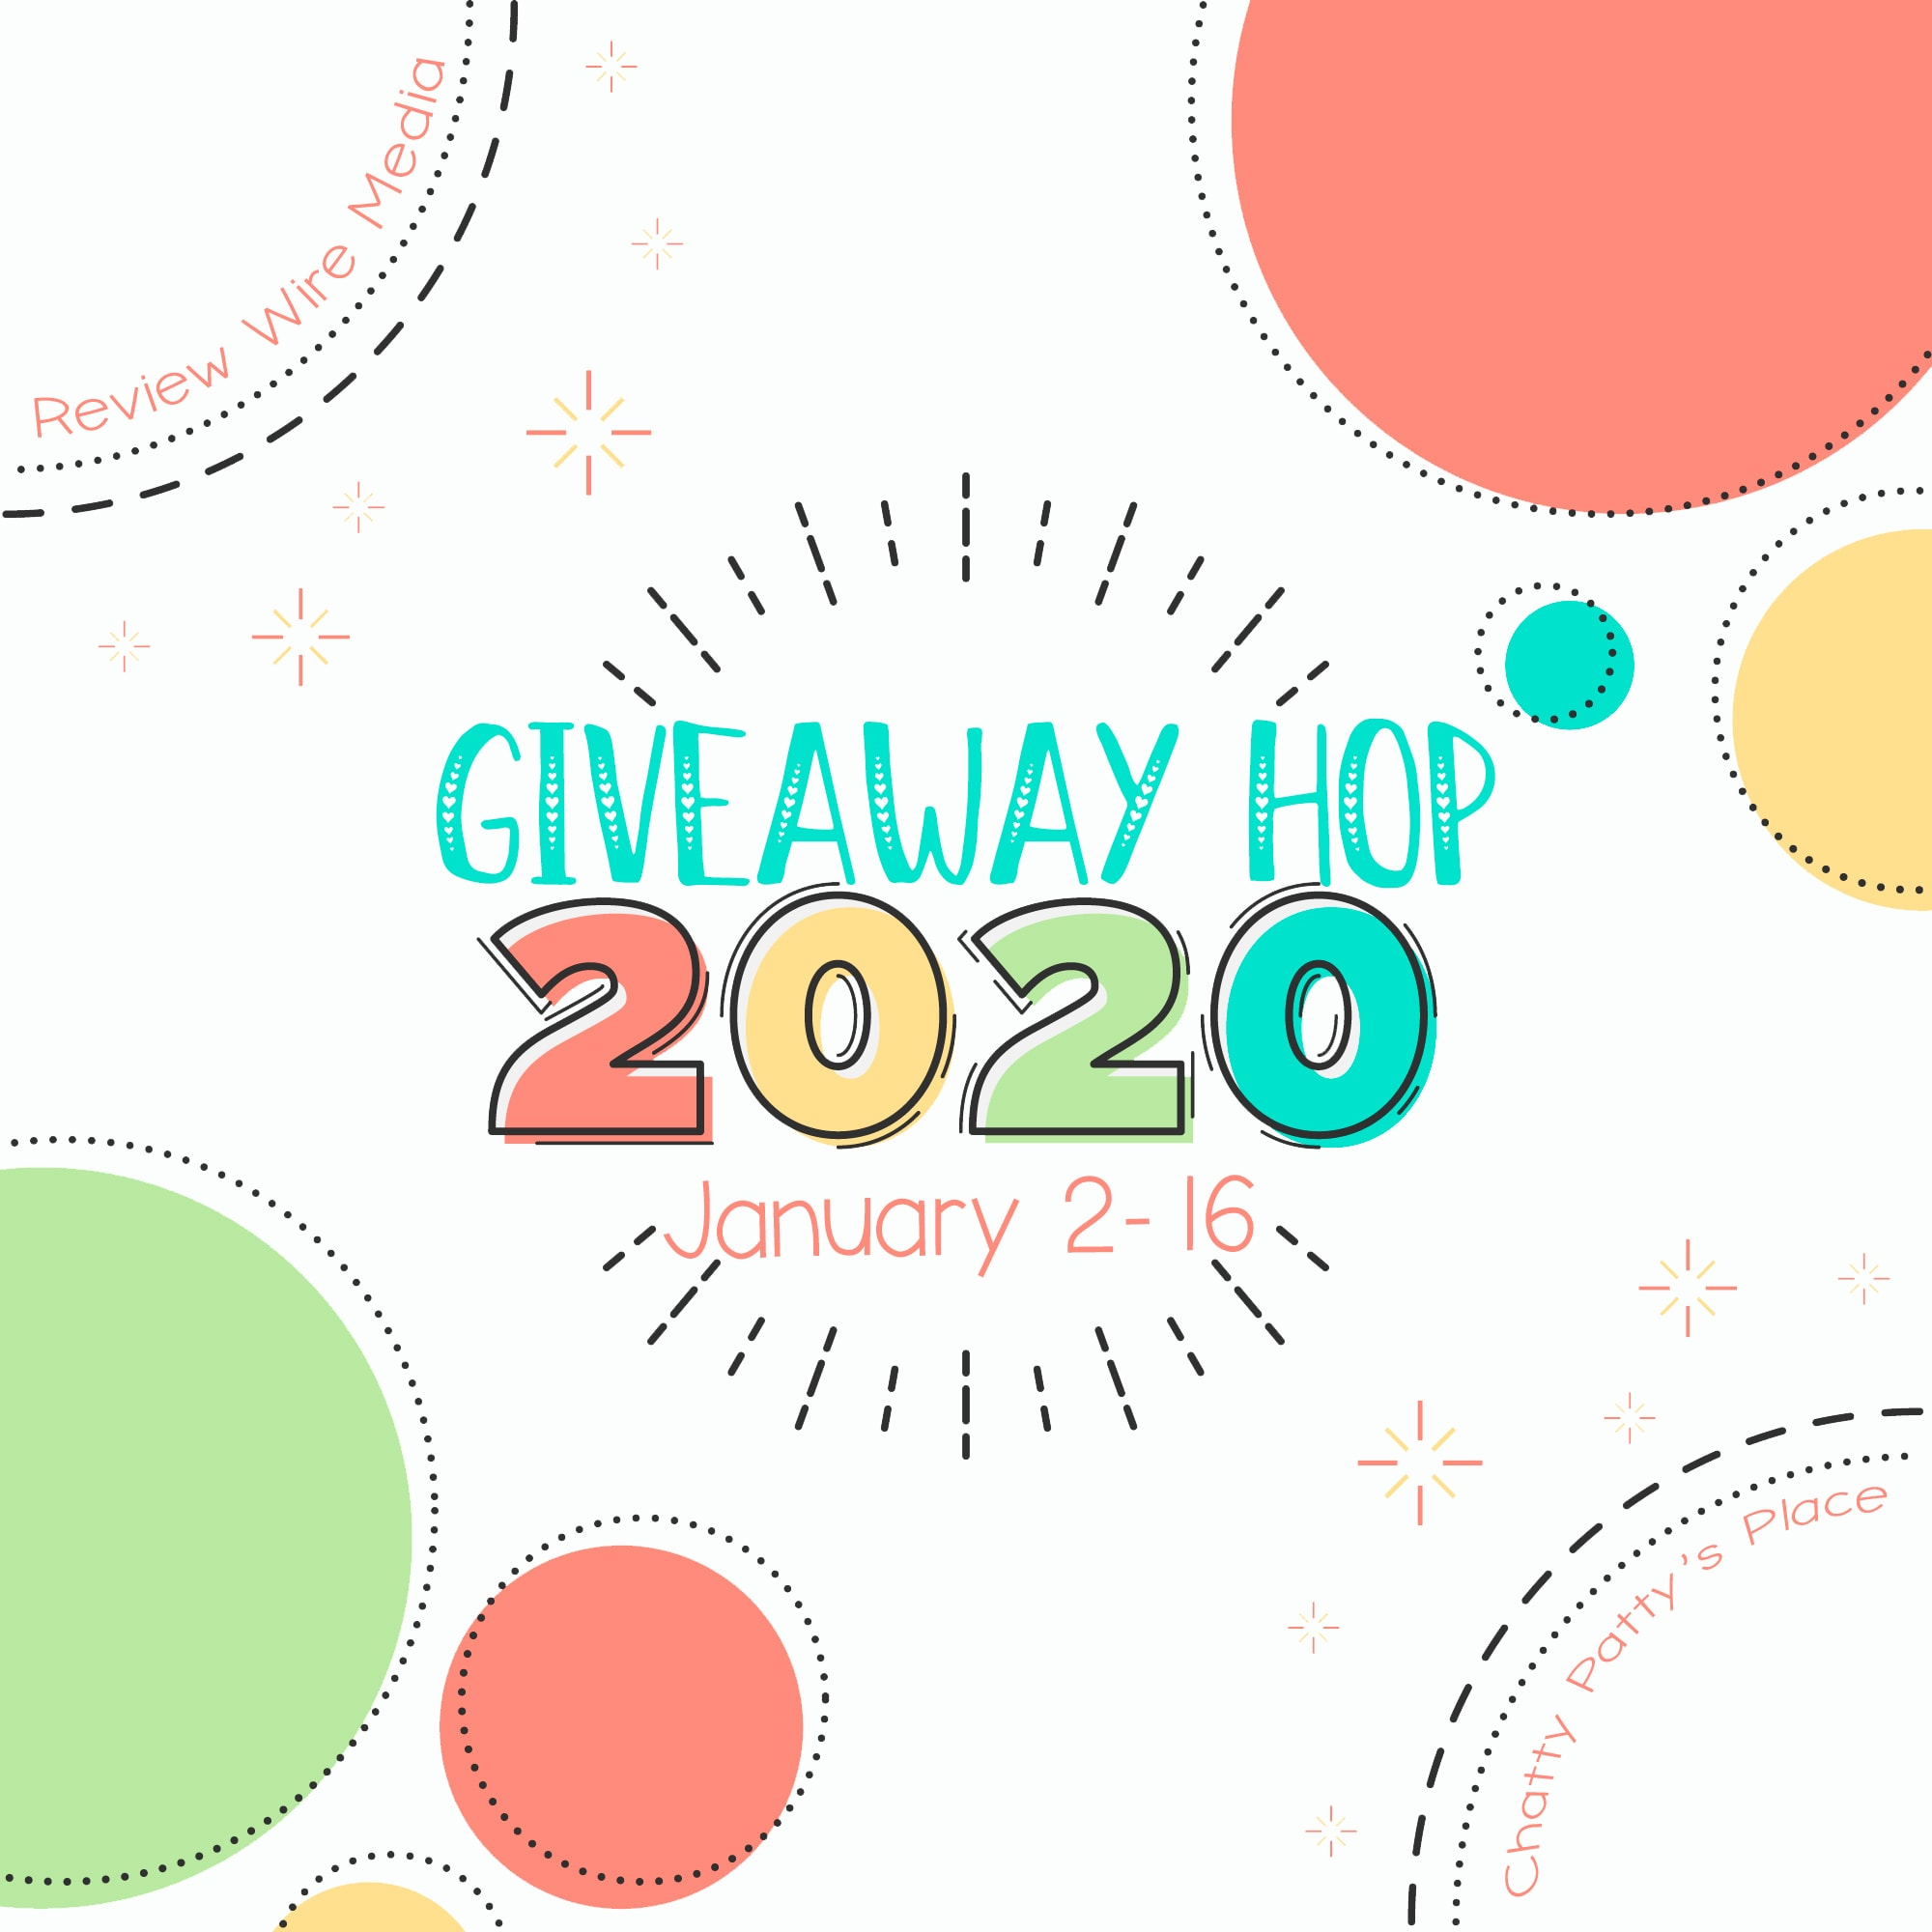 Welcome 2020 Giveaway Hop